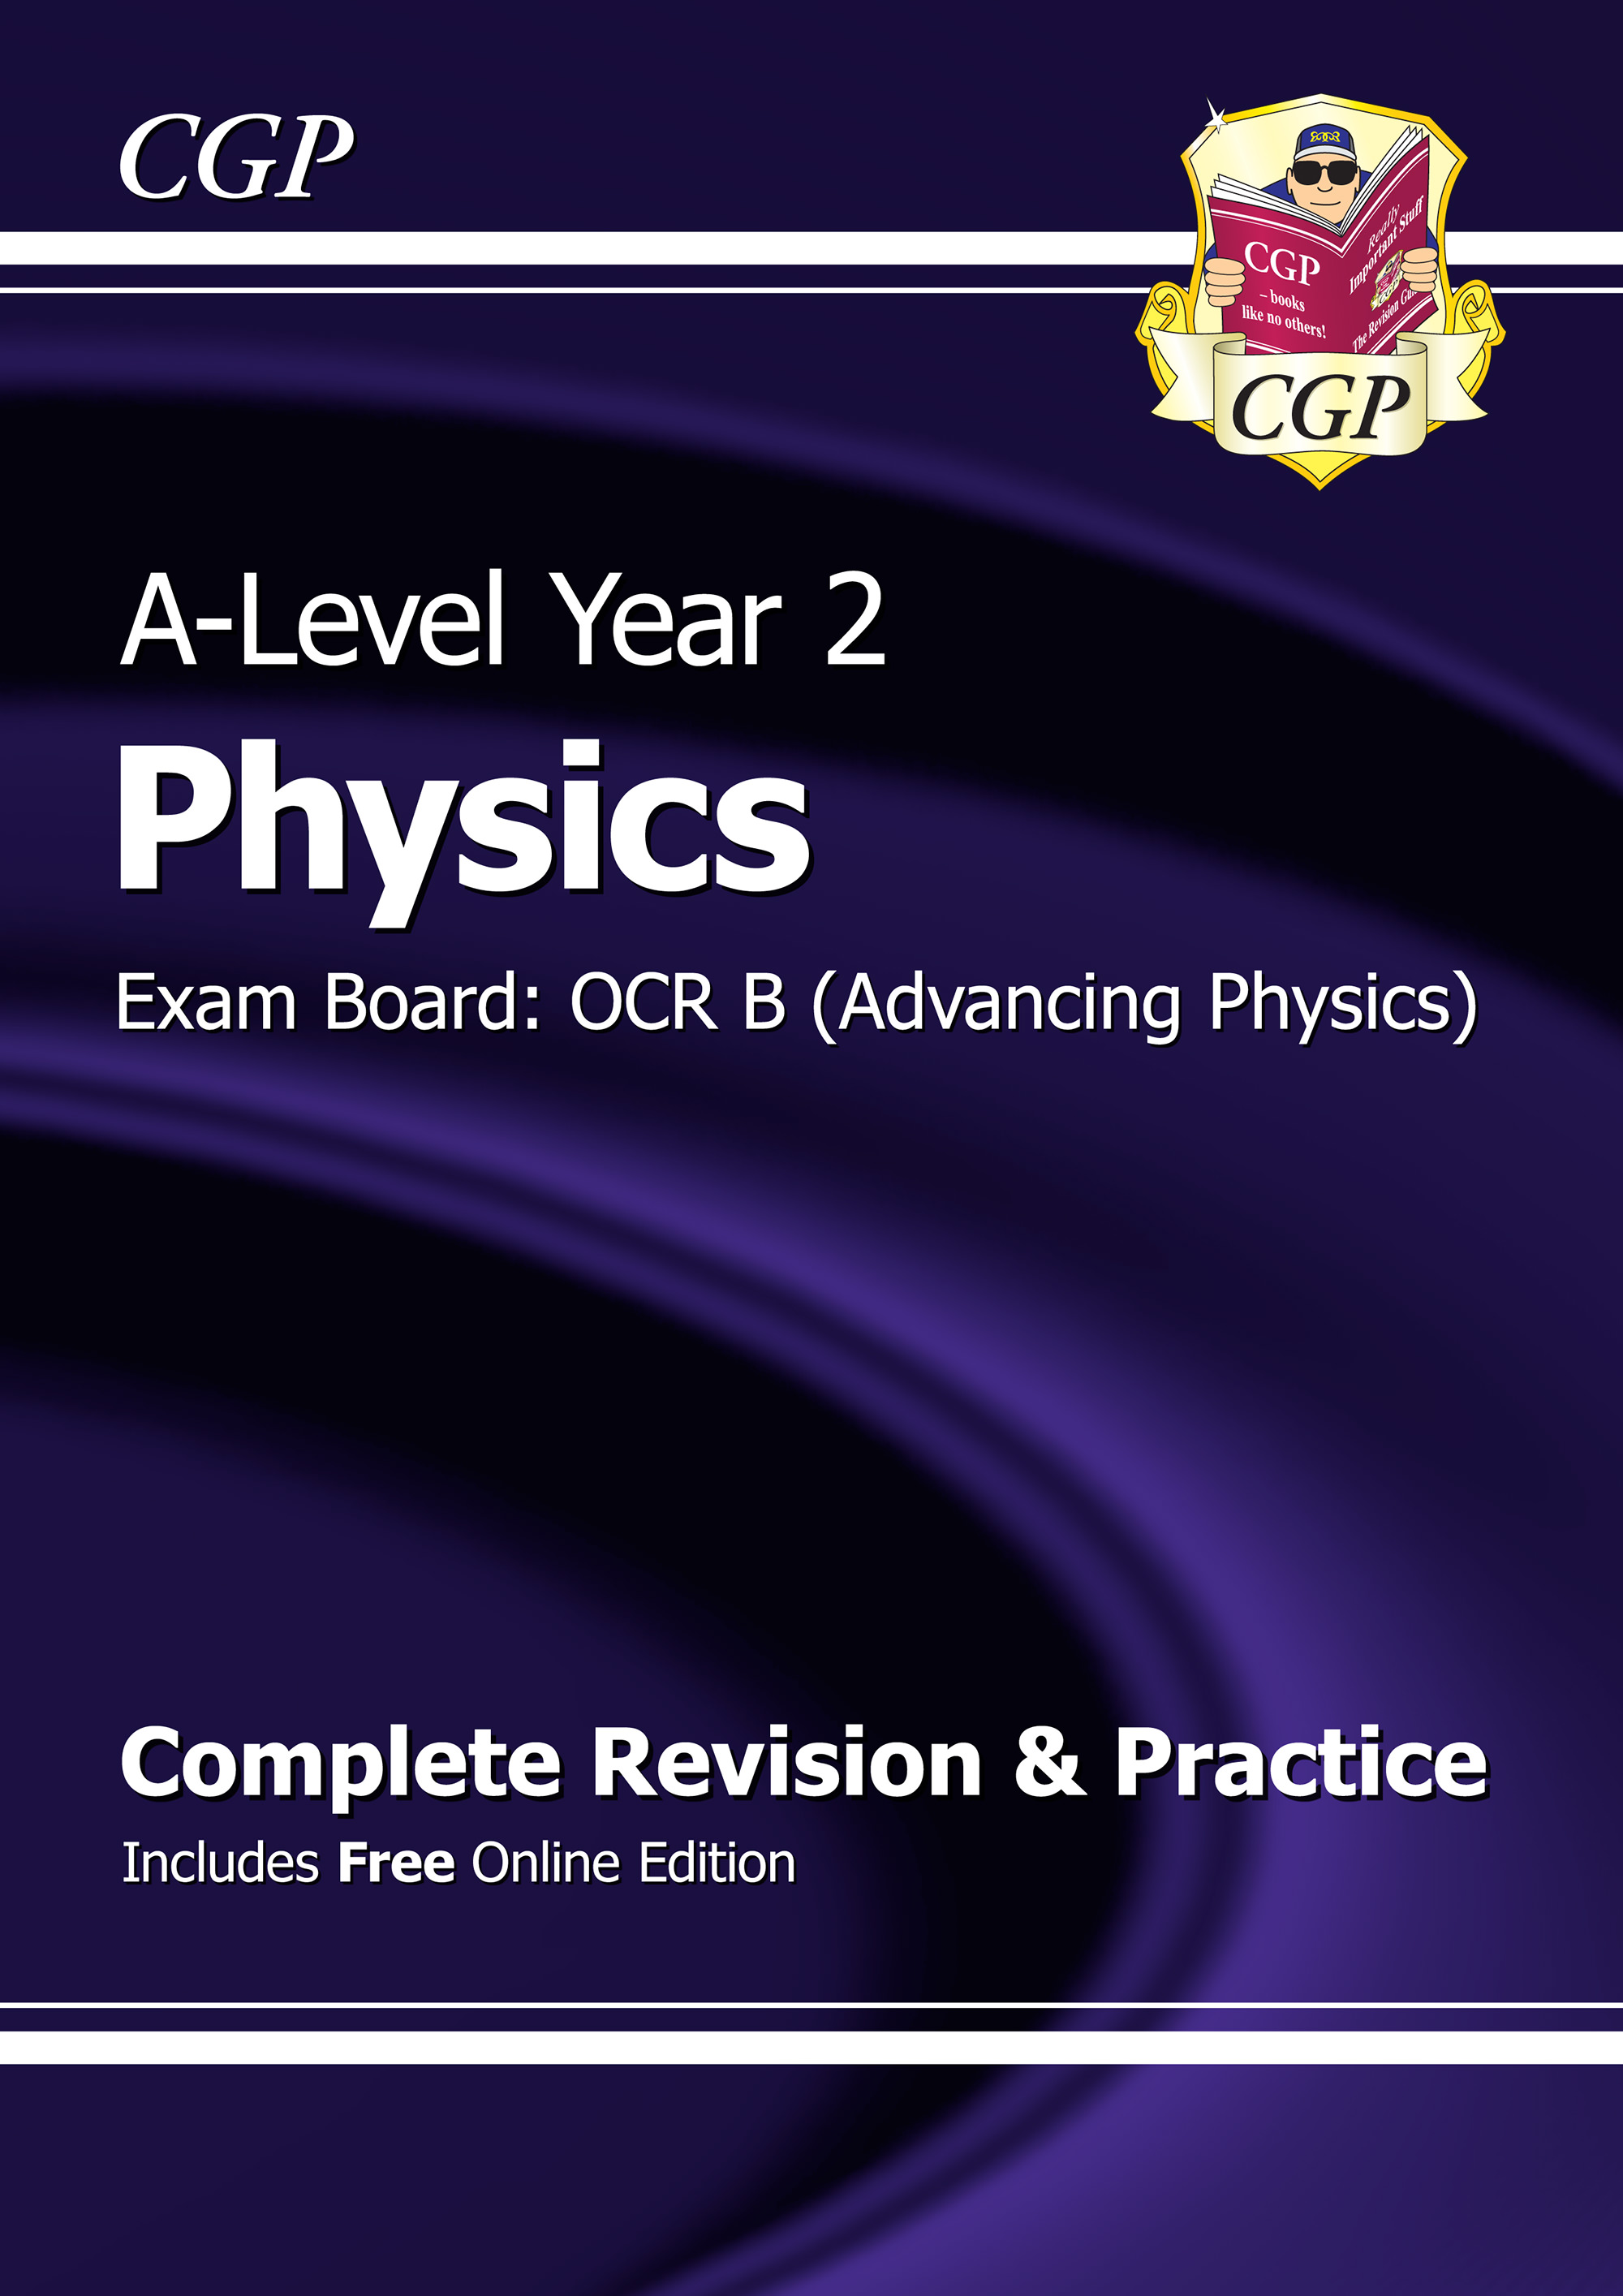 PRBR62 - A-Level Physics: OCR B Year 2 Complete Revision & Practice with Online Edition